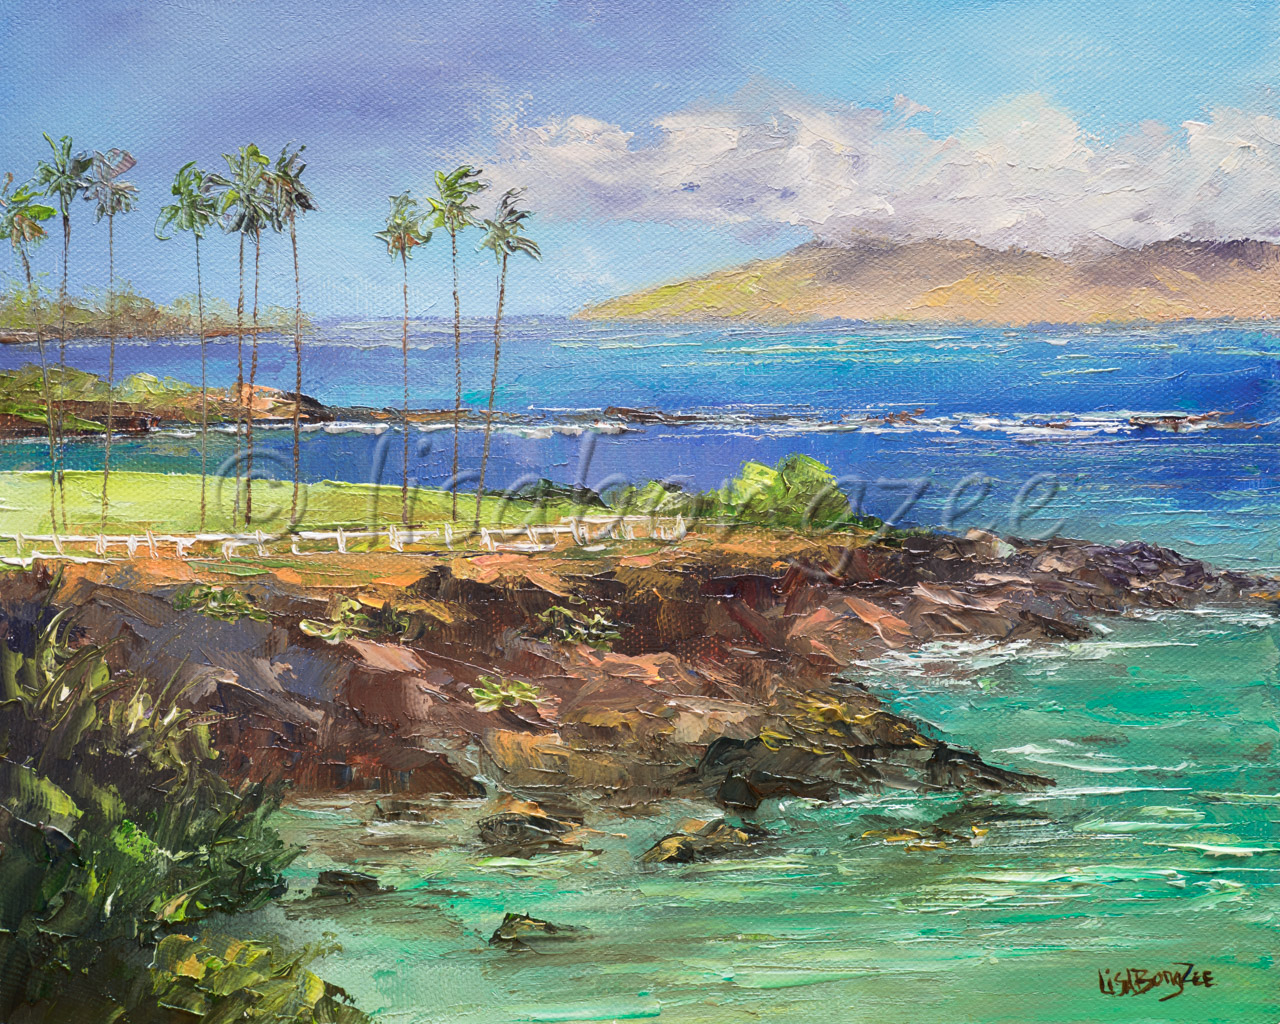 original oil of teal sea foam ocean and a dark blue ocean in the distance. Mountains in the background and tall palm trees in the distance. Rocks line the shore